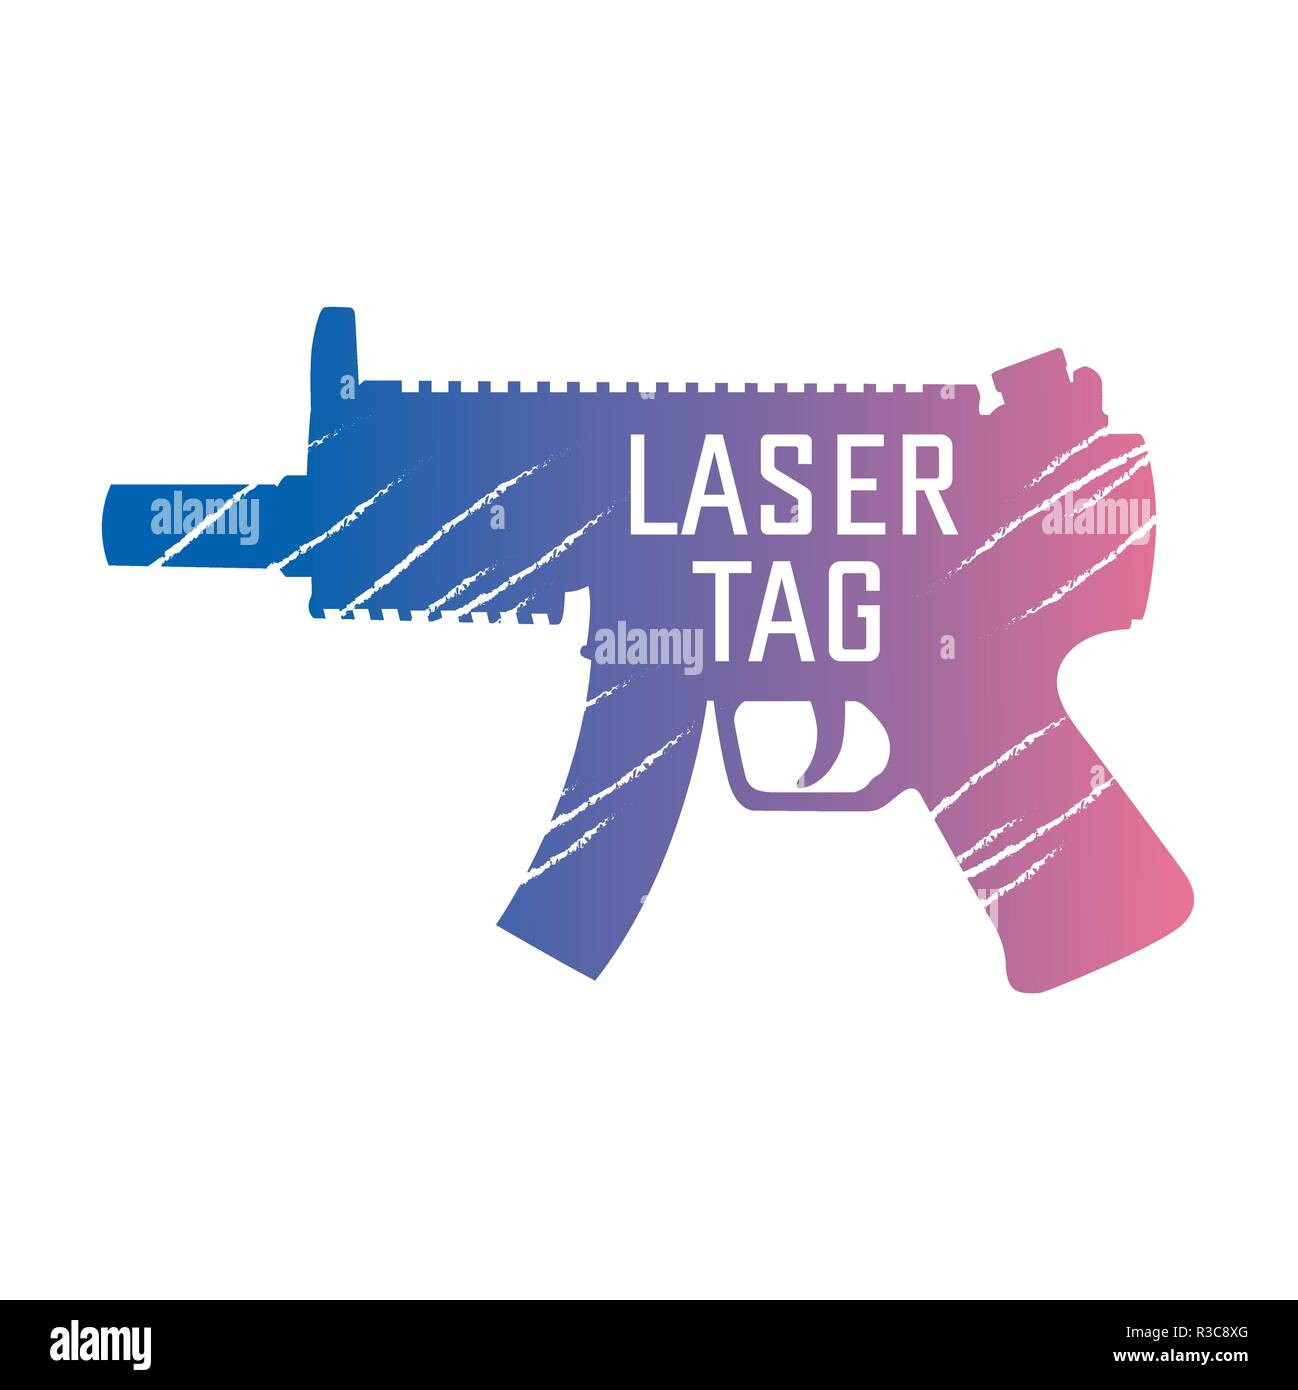 vector logo for laser tag and airsoft - Stock Vector